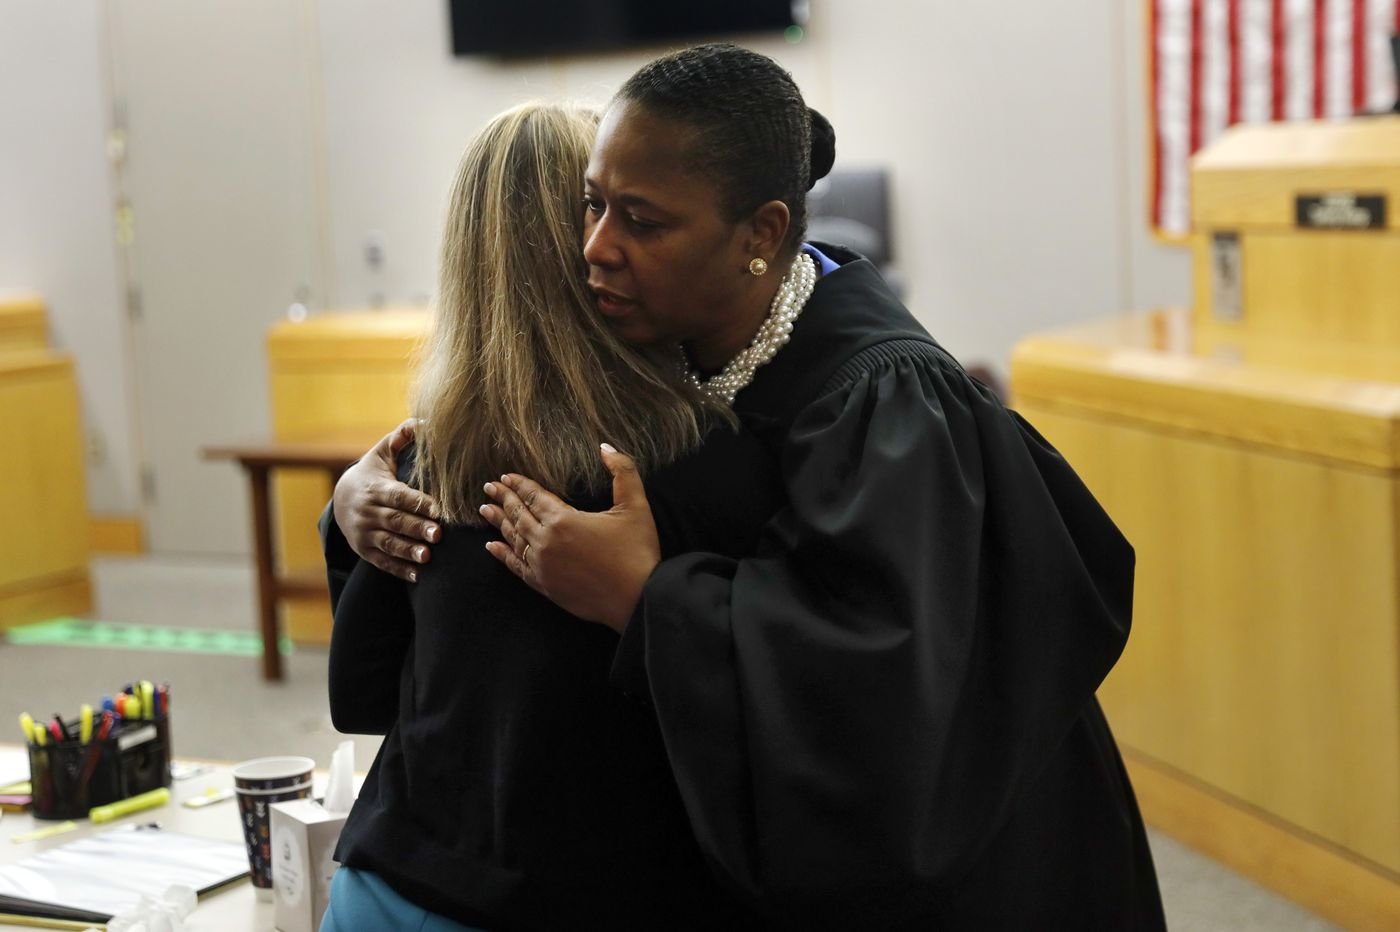 Dallas judge defends giving cop convicted of murder a bible and hug, saying she 'could not refuse'